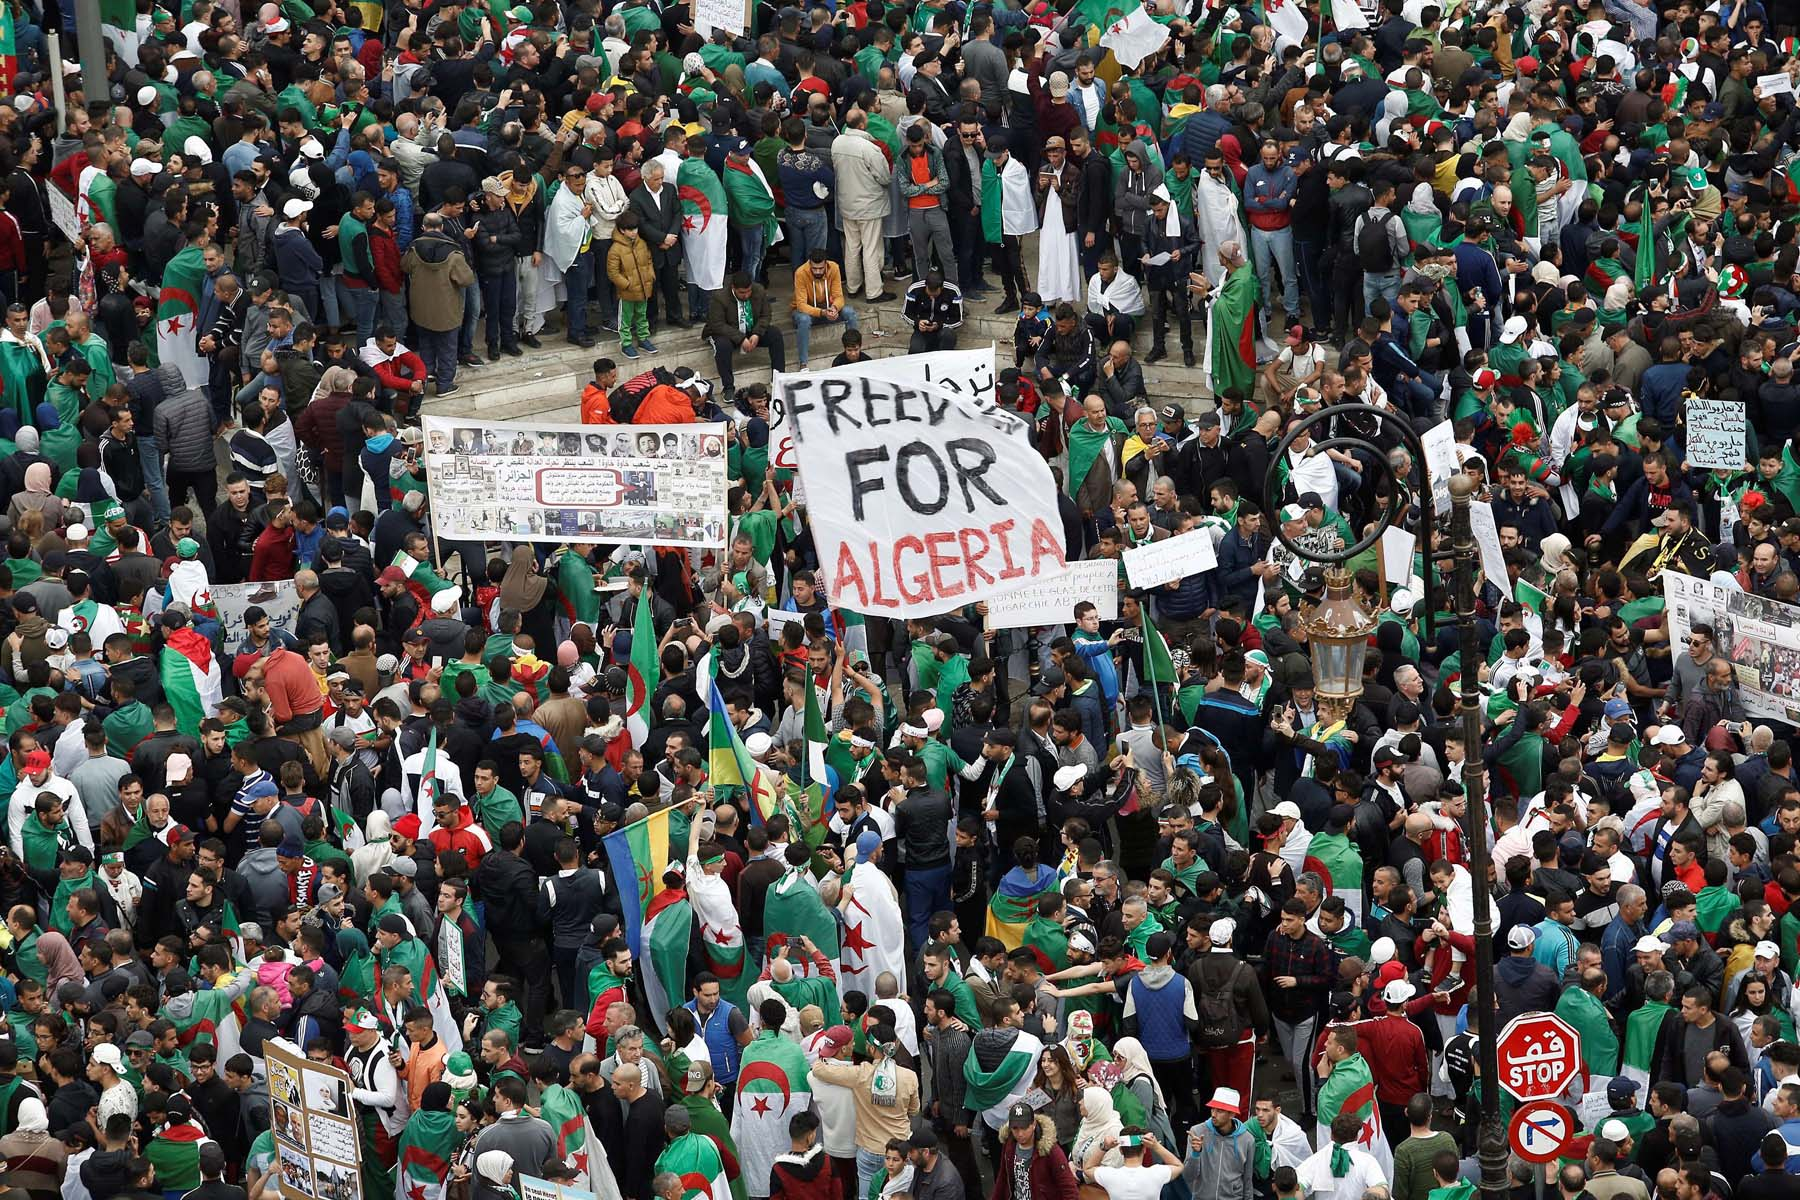 Algerian demonstrators hold banners as they return to the streets to press demands for wholesale democratic change well beyond former president Abdelaziz Bouteflika's resignation, in Algiers, April 19, 2019. (Reuters)